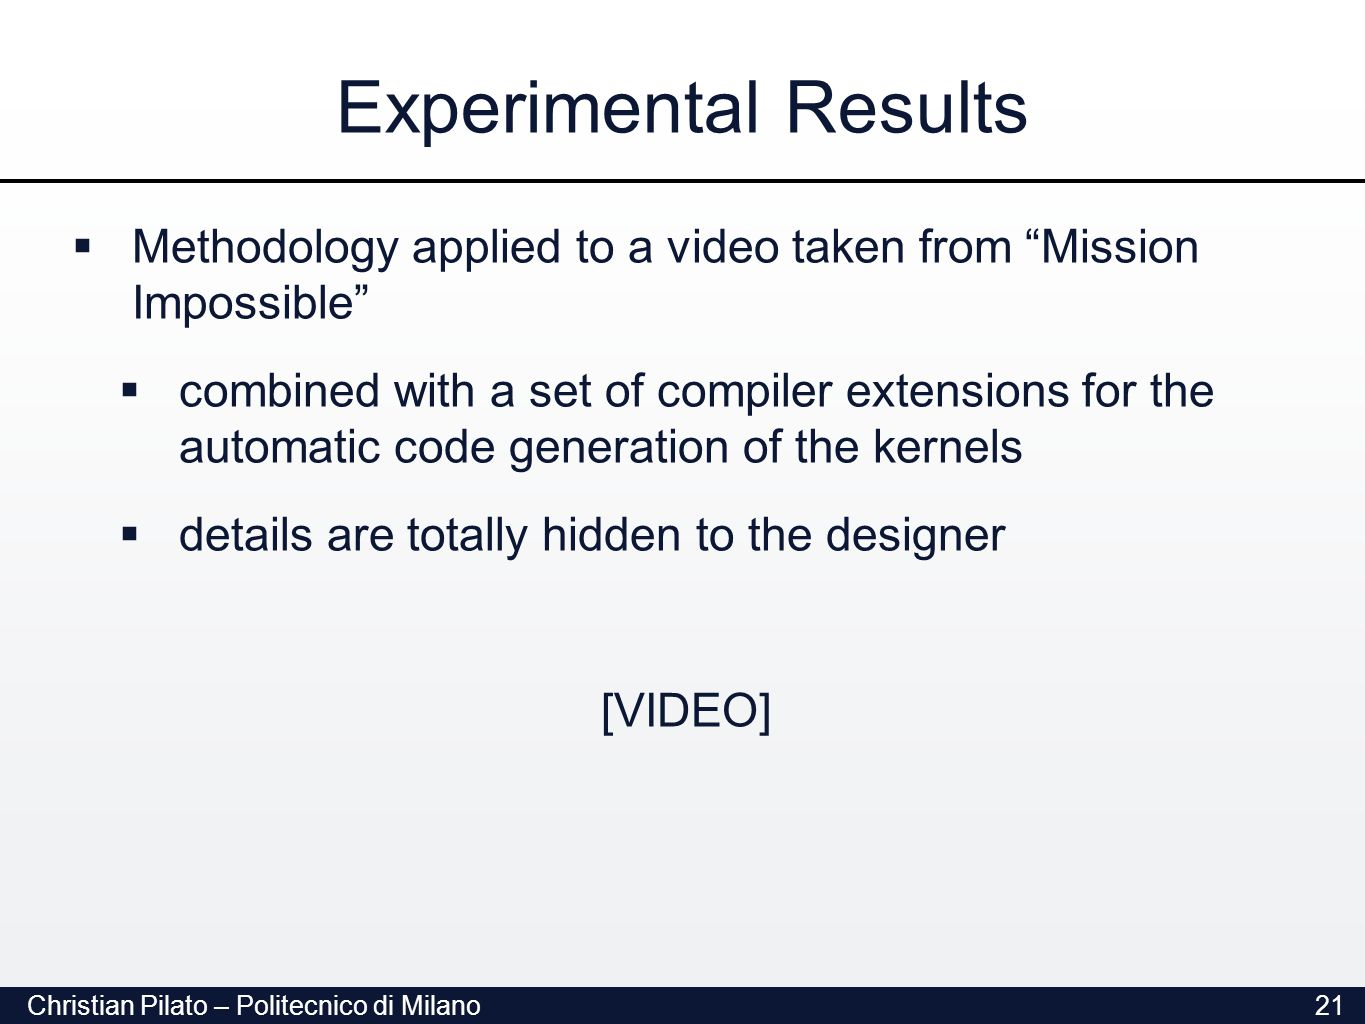 Christian Pilato – Politecnico di Milano21 Experimental Results  Methodology applied to a video taken from Mission Impossible  combined with a set of compiler extensions for the automatic code generation of the kernels  details are totally hidden to the designer [VIDEO]